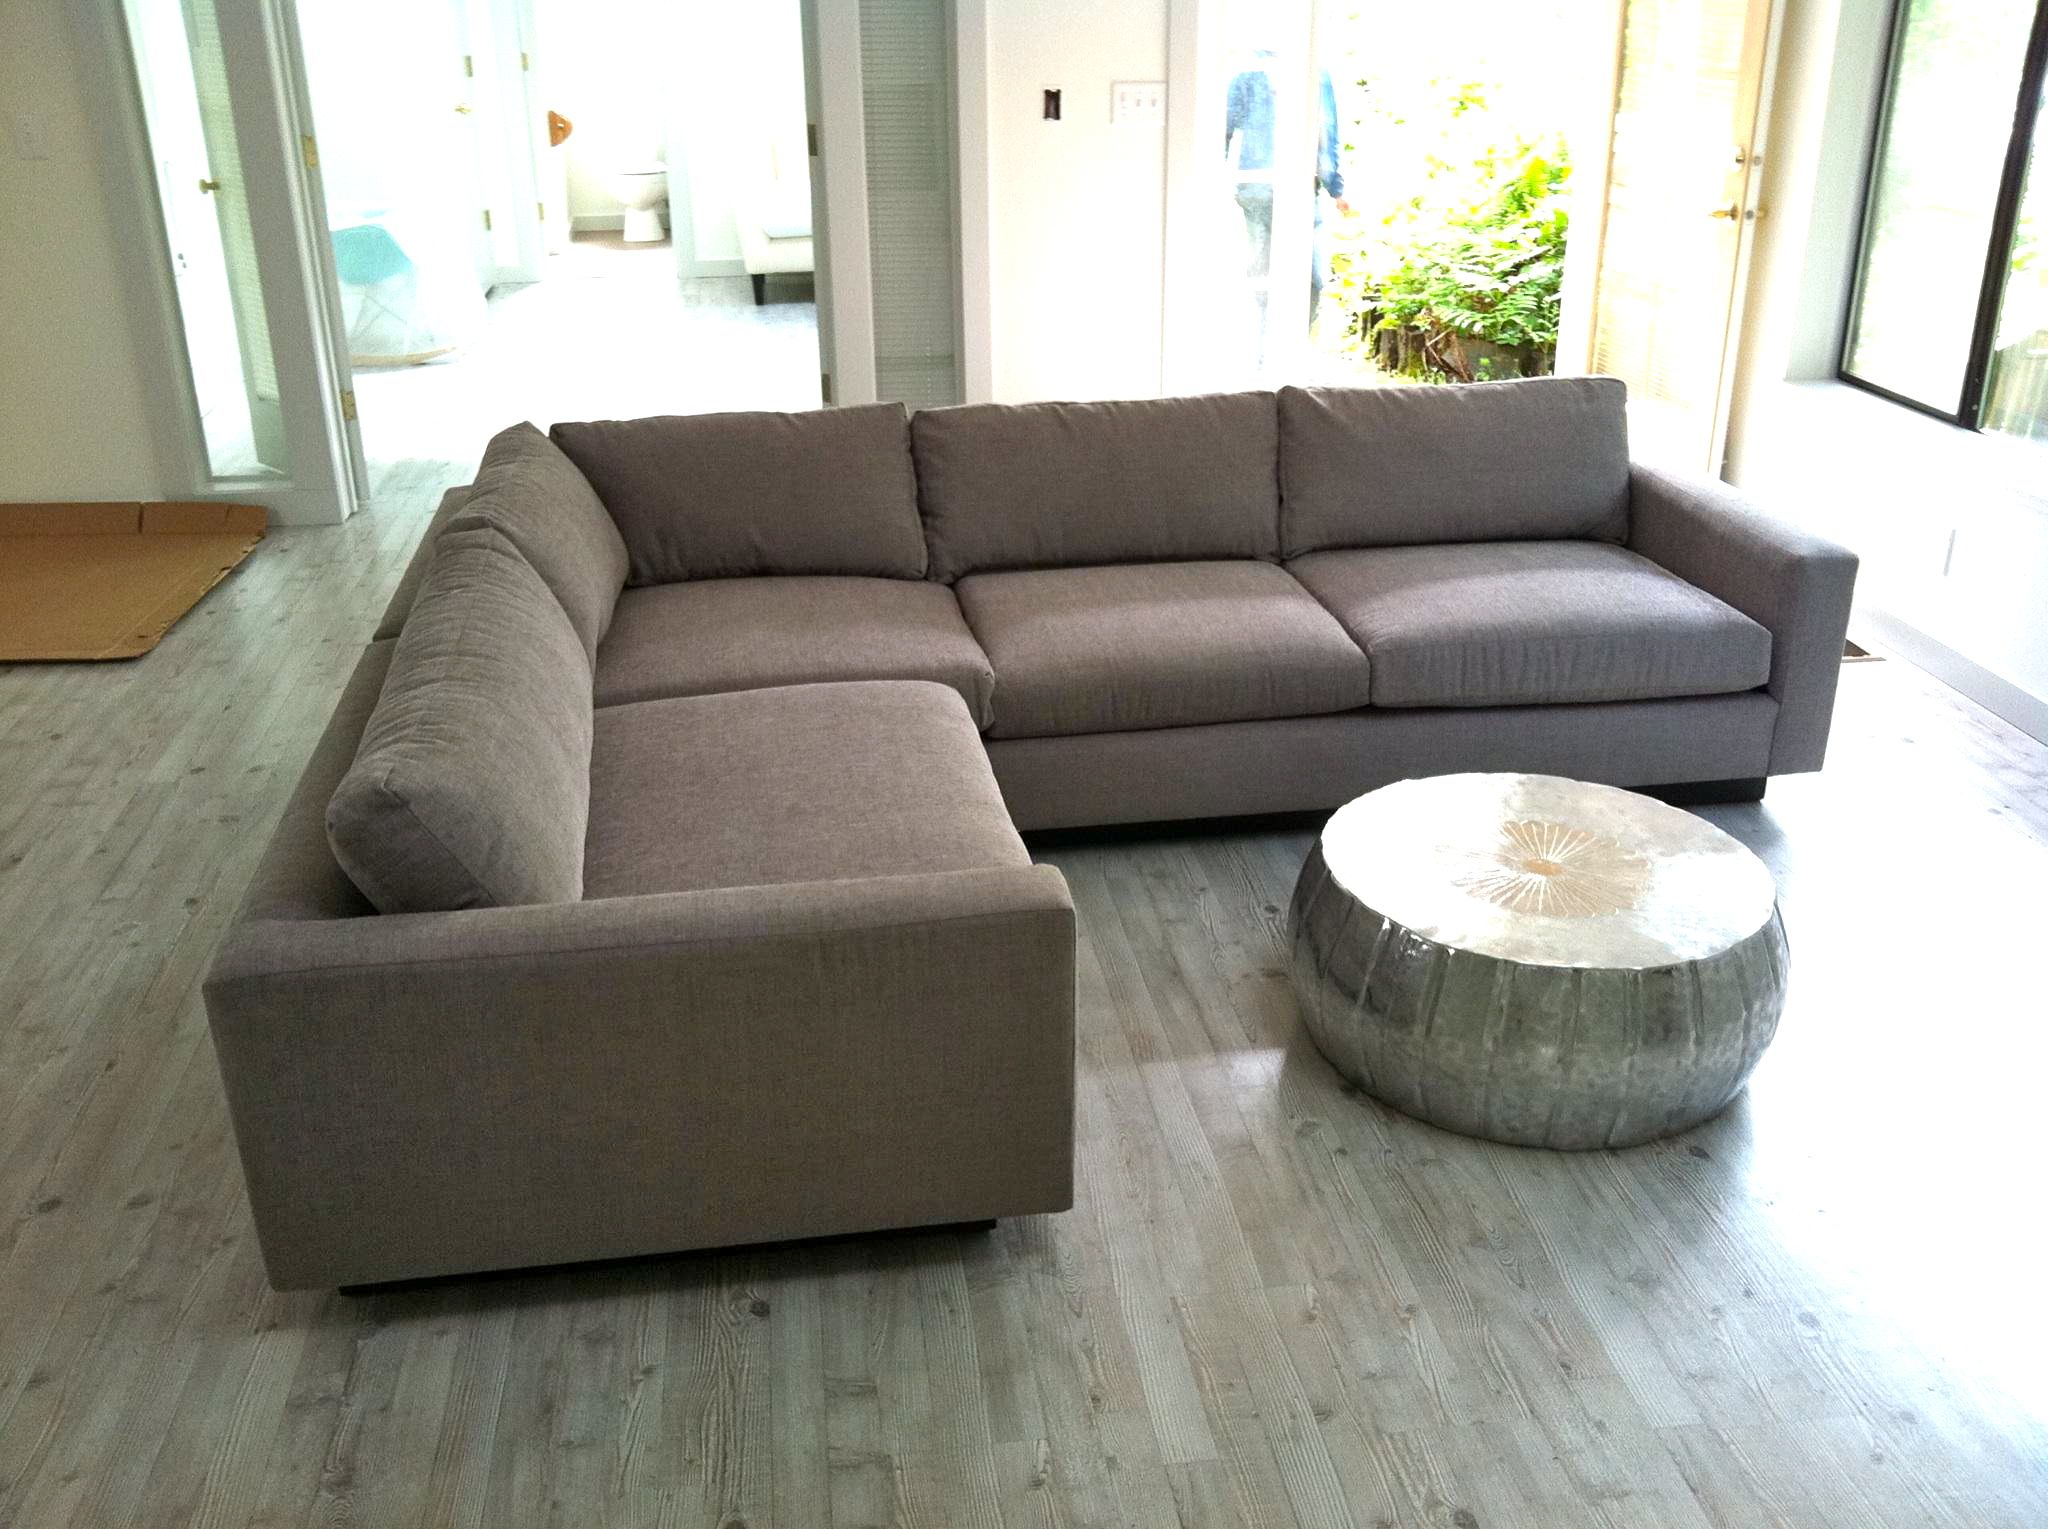 Amazing Deep Seat Couch 56 Modern Sofa Ideas with Deep Seat Couch